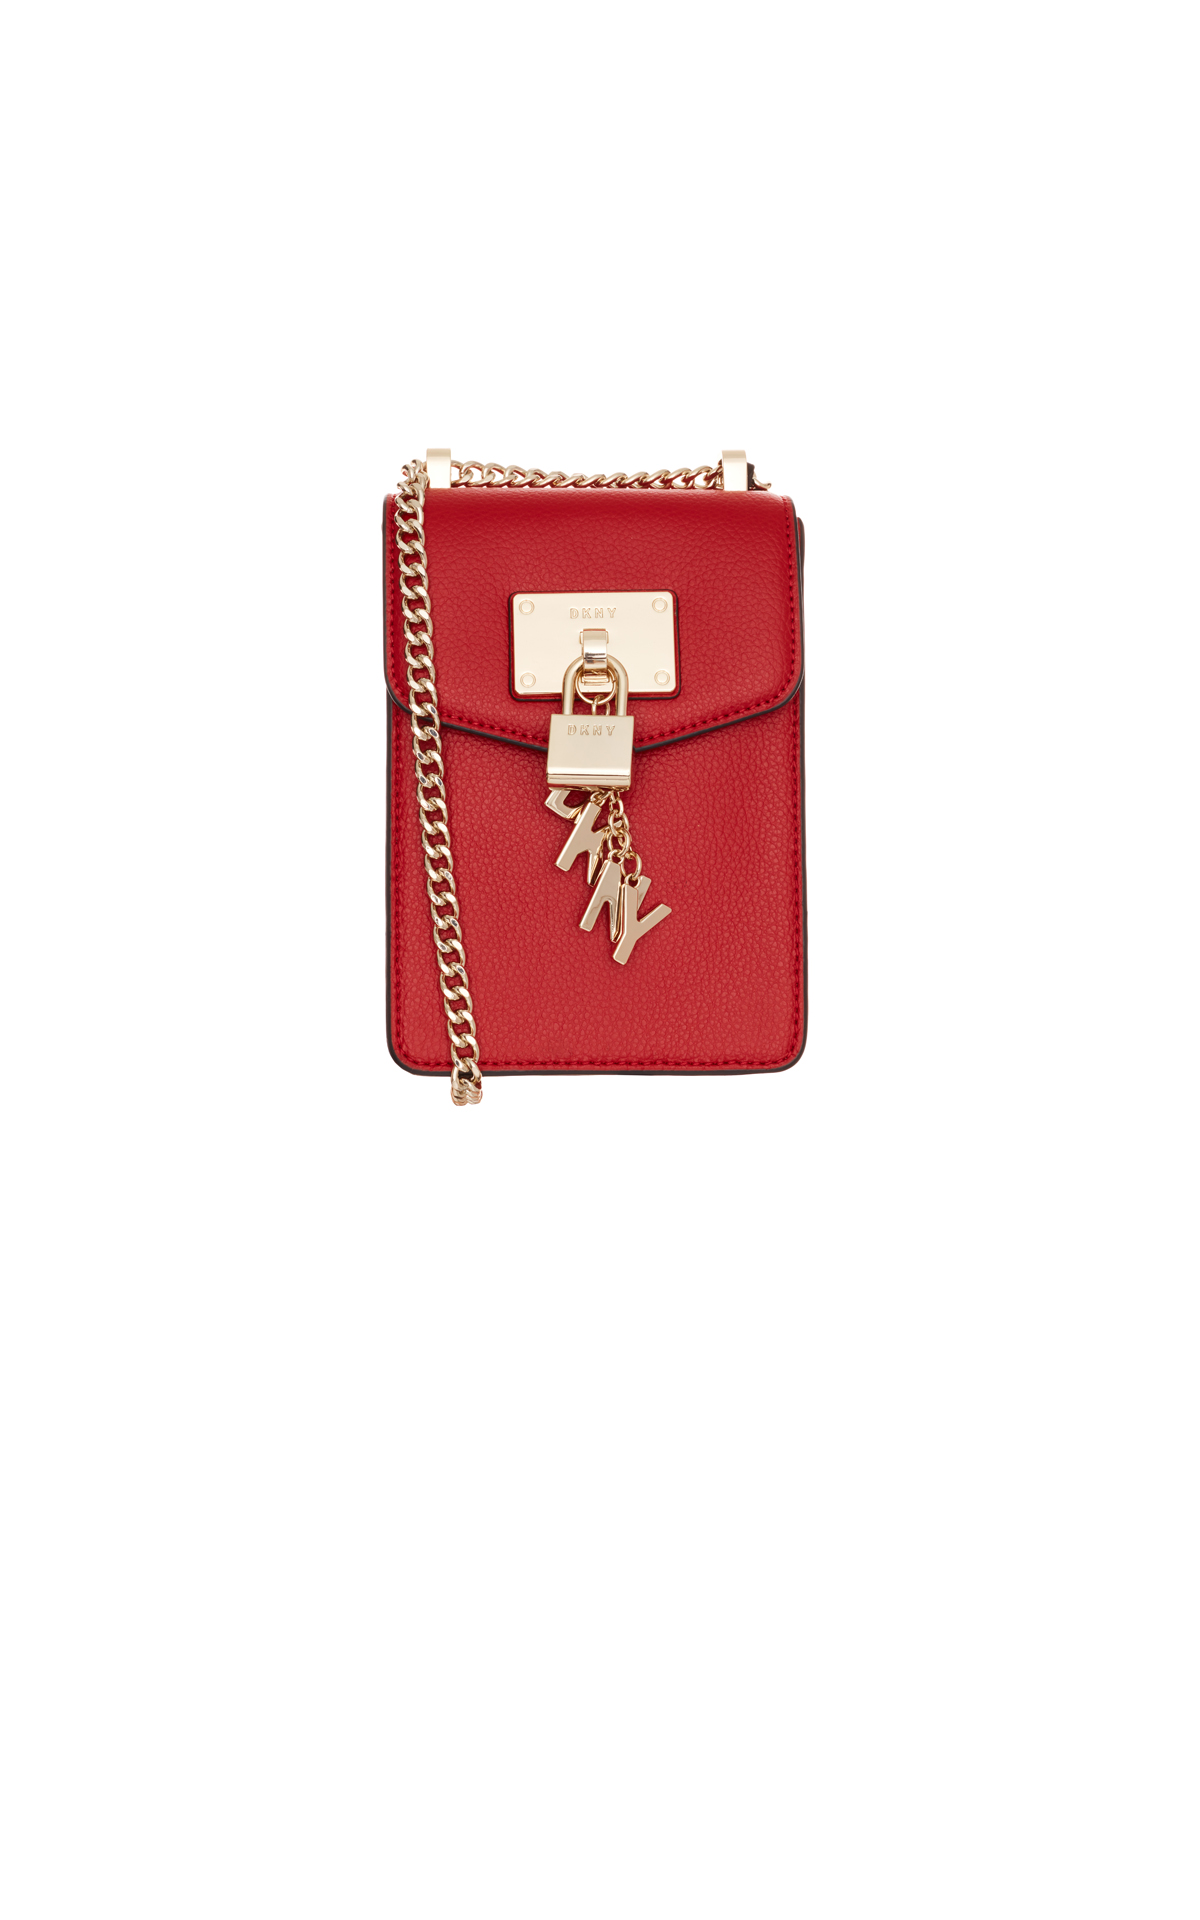 DKNY Cross body chain bag from Bicester Village